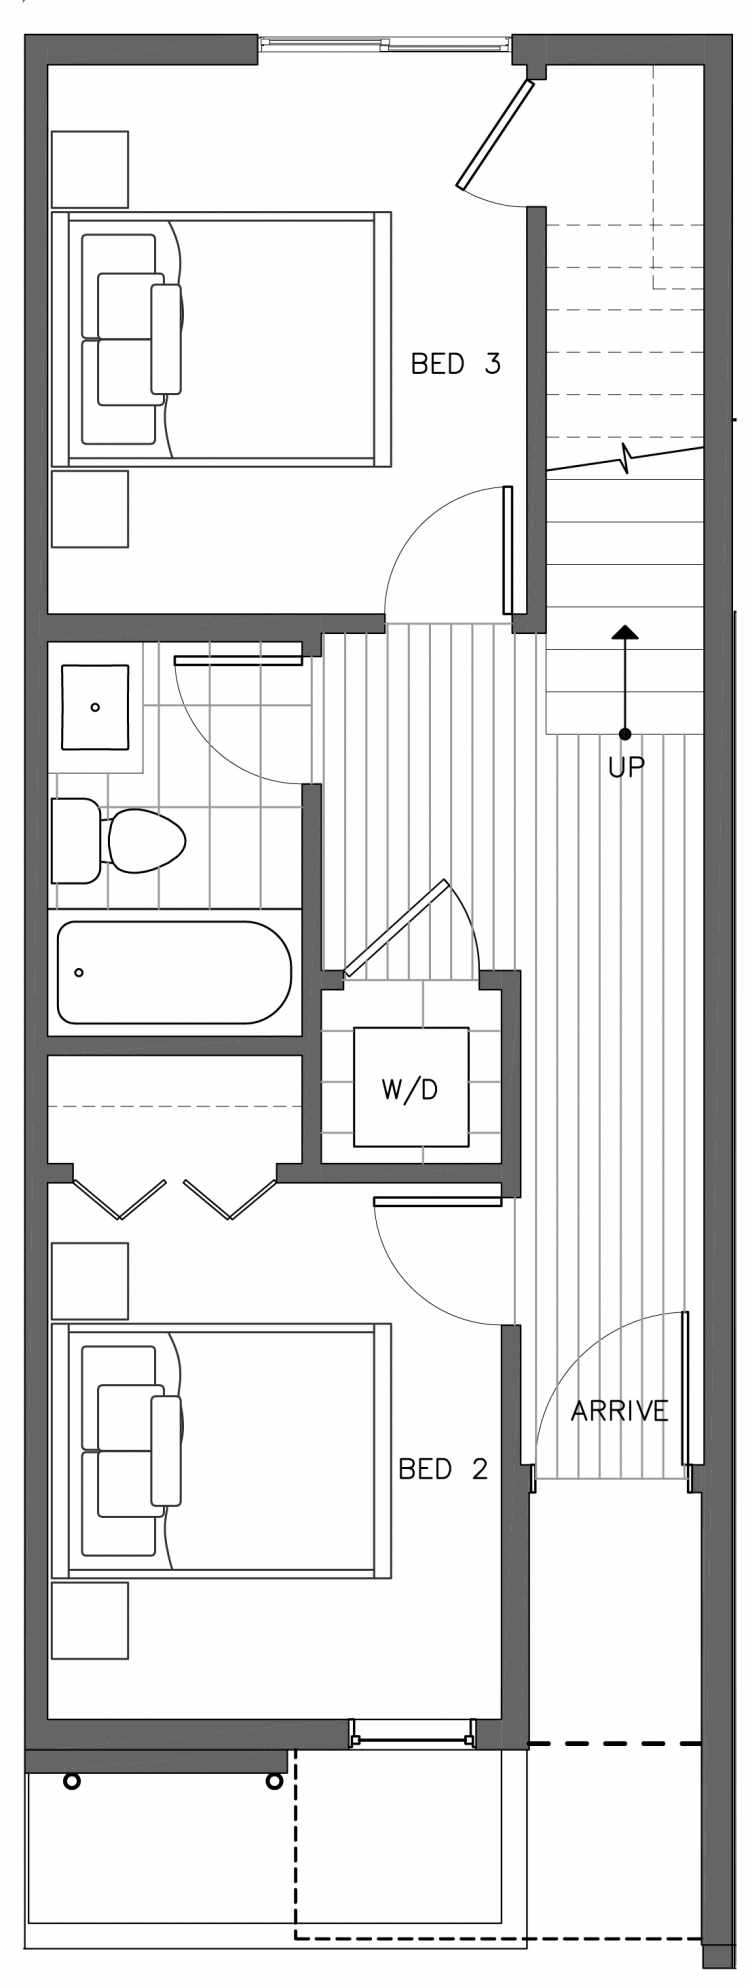 First Floor Plan of 3236B 14th Ave W, One of the Harloe Townhomes in North Queen Anne by Isola Homes